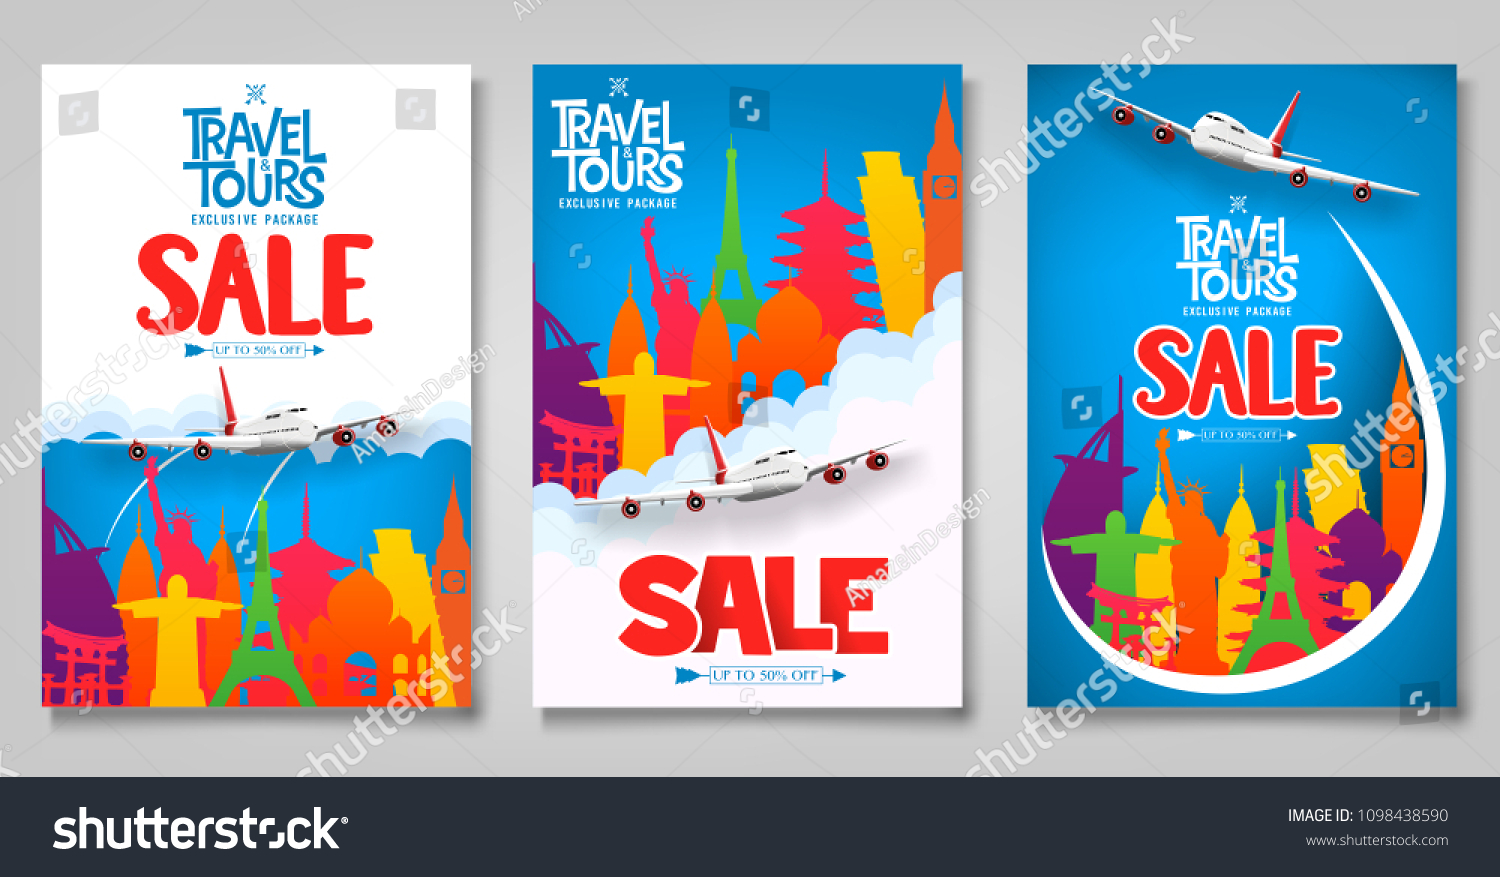 travel tours sale promotional posters template のベクター画像素材